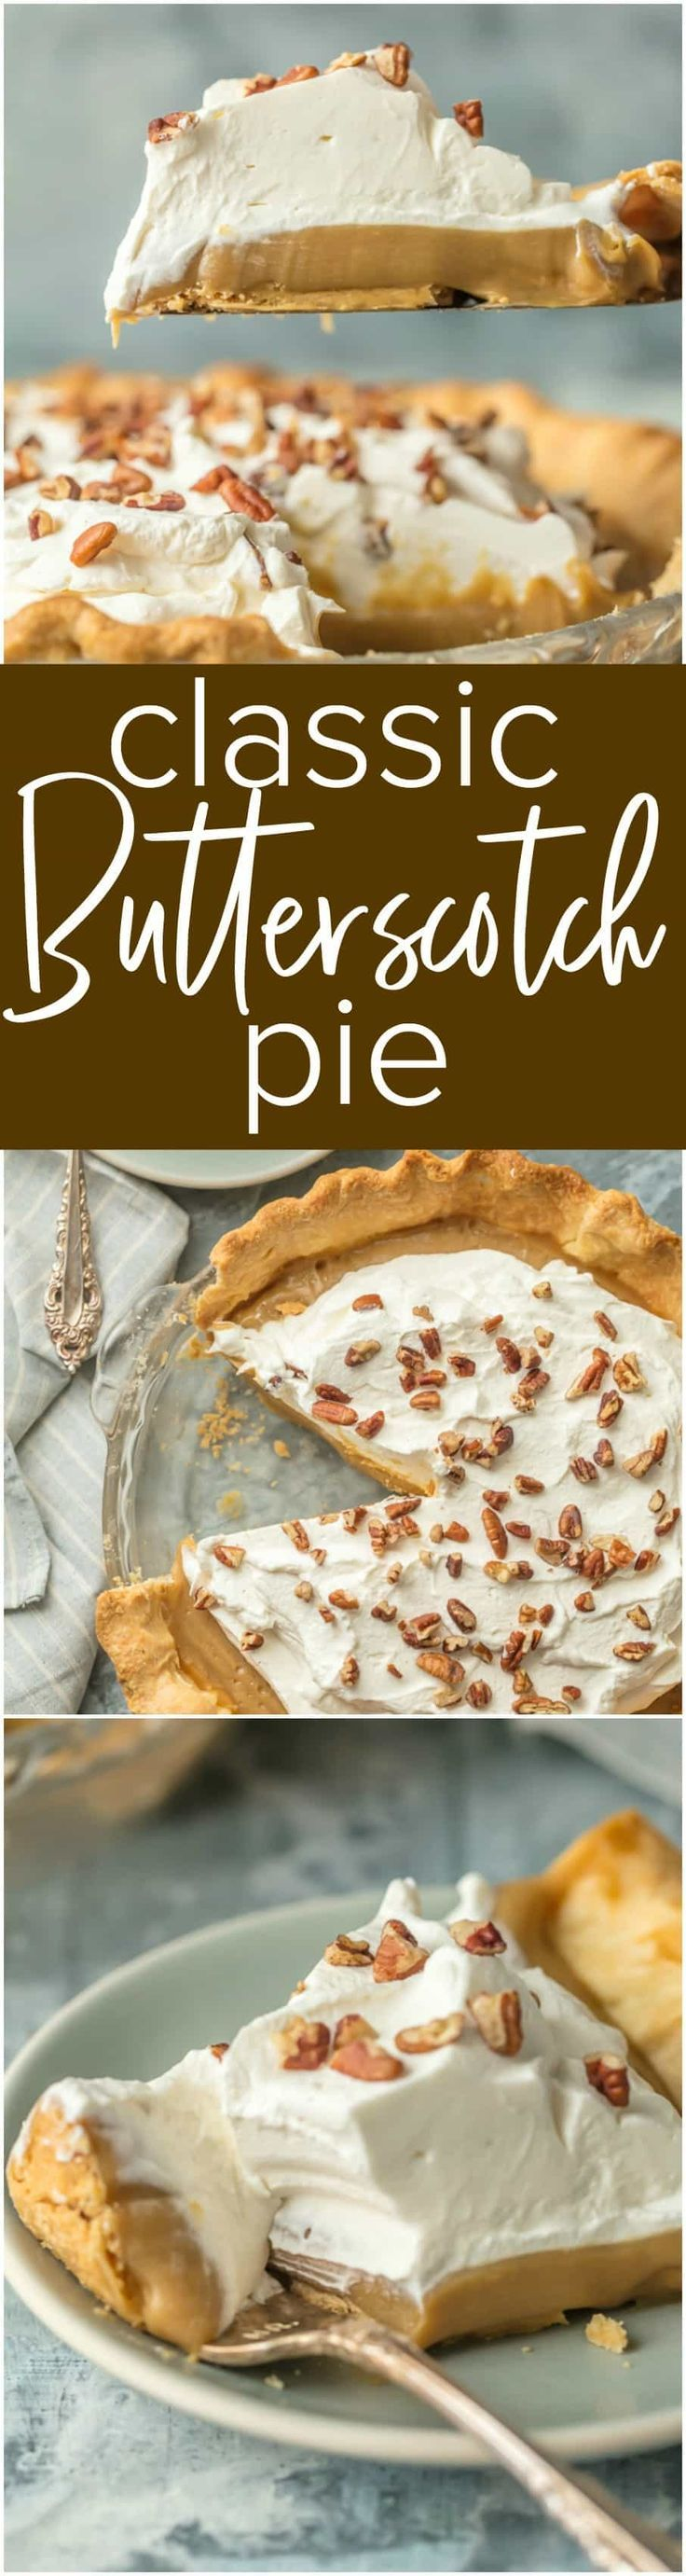 CLASSIC BUTTERSCOTCH PIE is the most decadent dessert you'll have on your holiday table. This pie is so rich and amazing everyone will be asking for the recipe. Perfect for easy Thanksgiving and Christmas baking! via @beckygallhardin